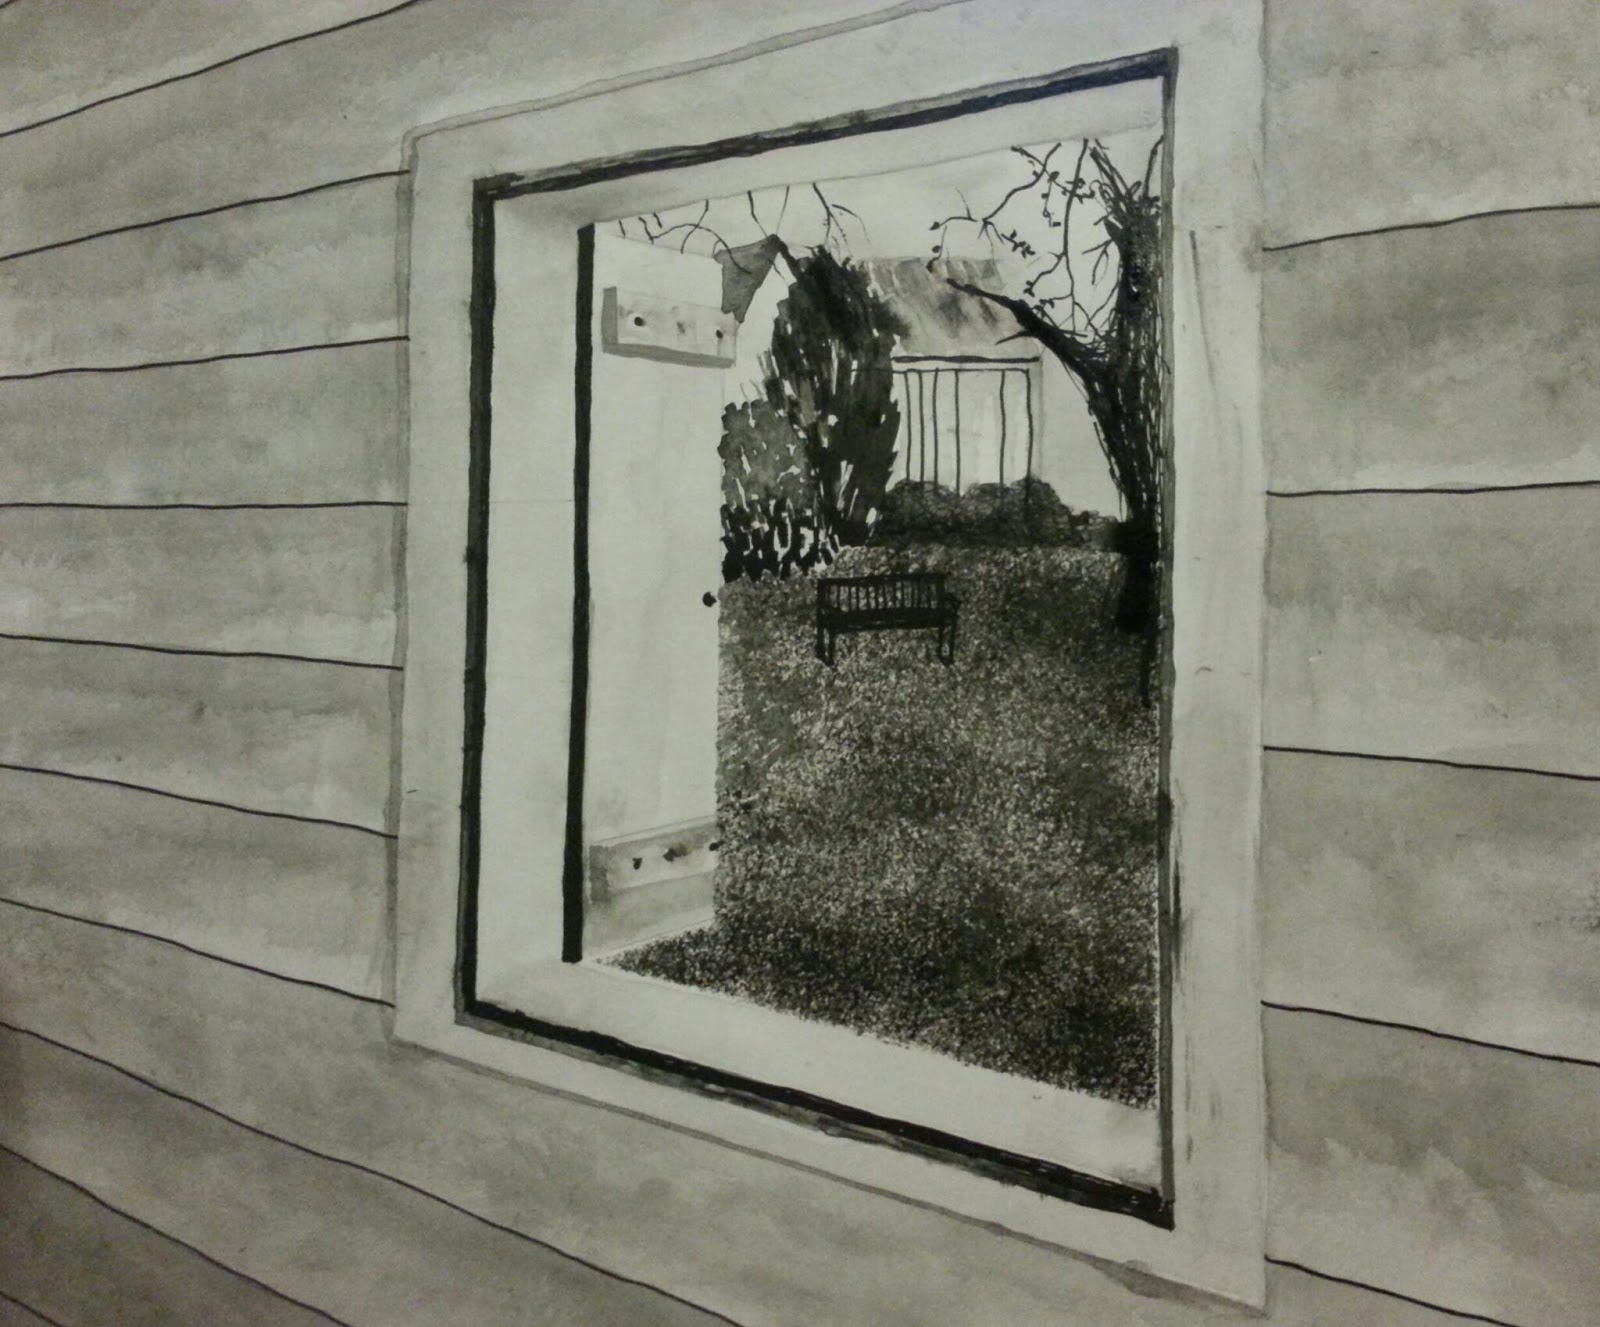 Drawing Straight Lines With Brush In Photo : Sarah bayly oca textiles: assignment 3